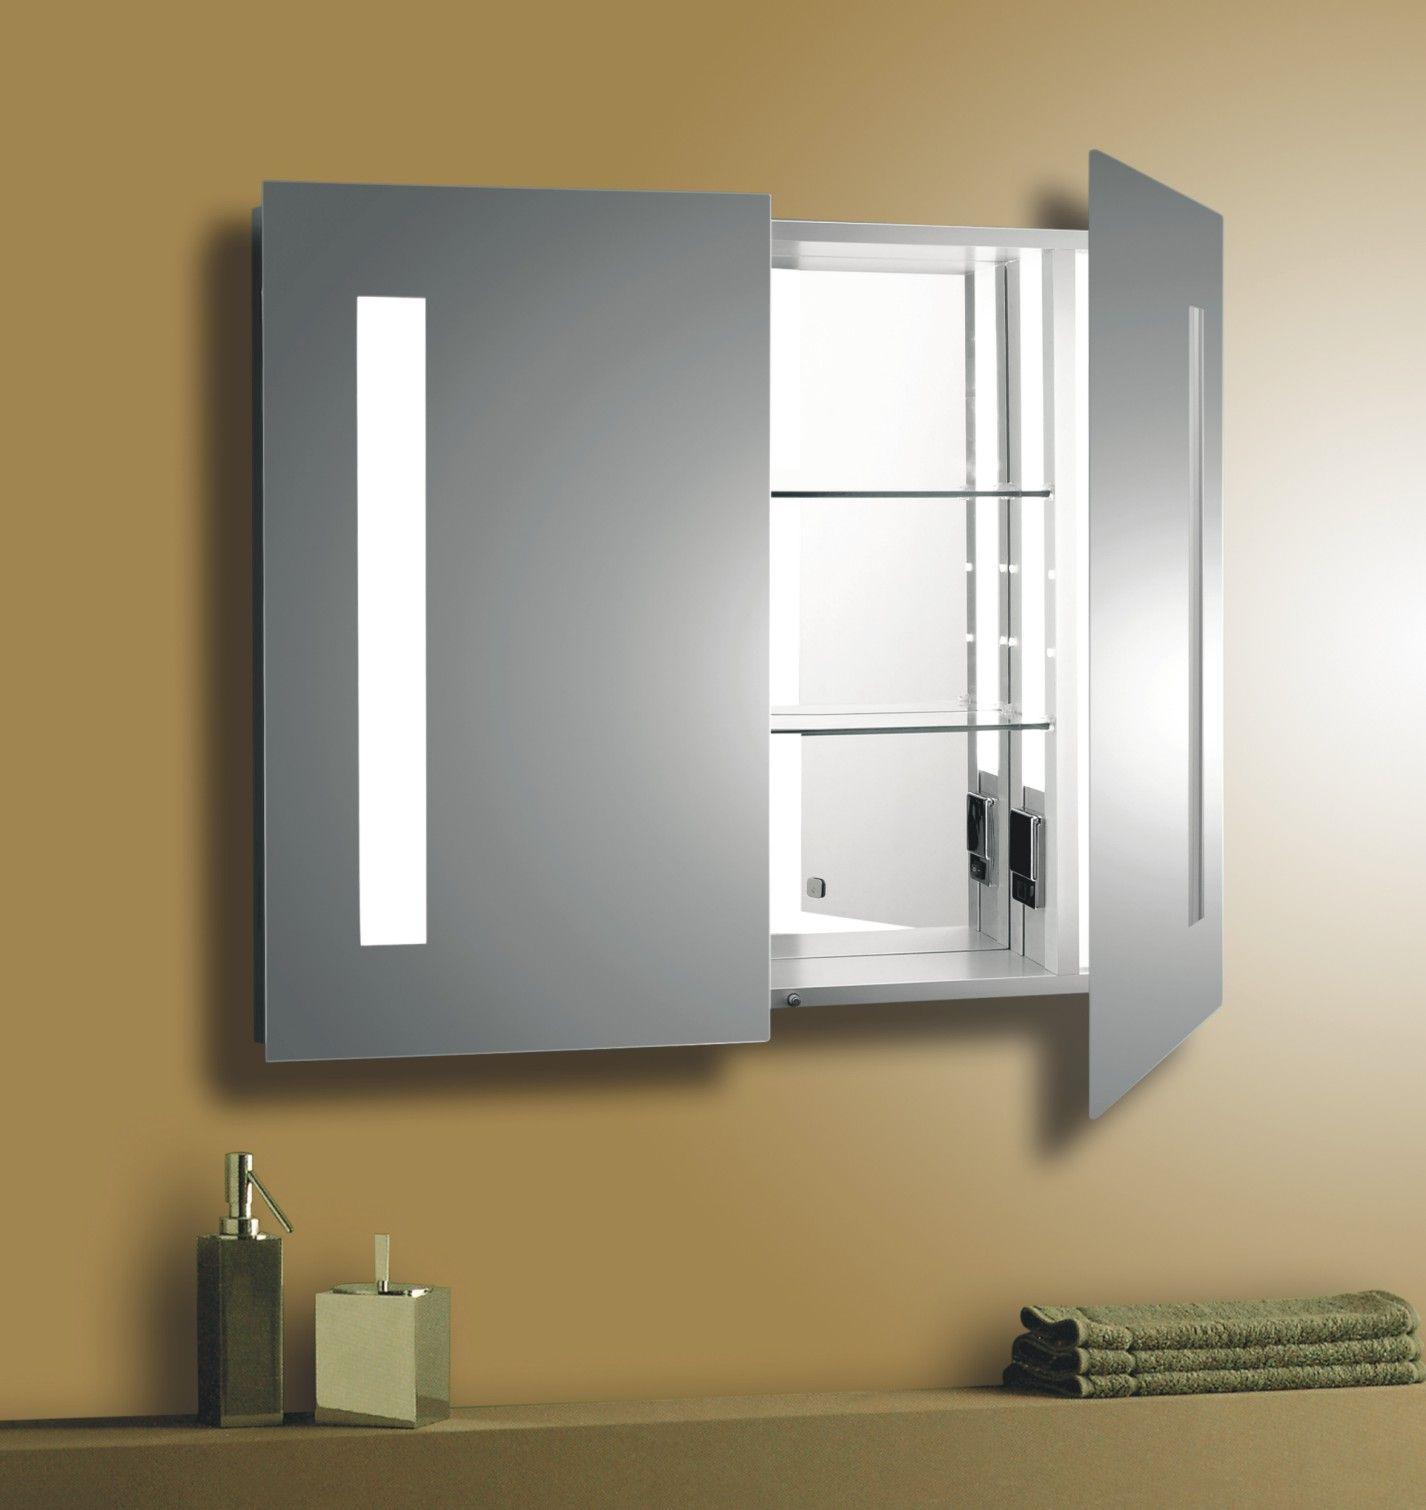 Lighted medicine cabinets recessed and gorgeous removing lighted